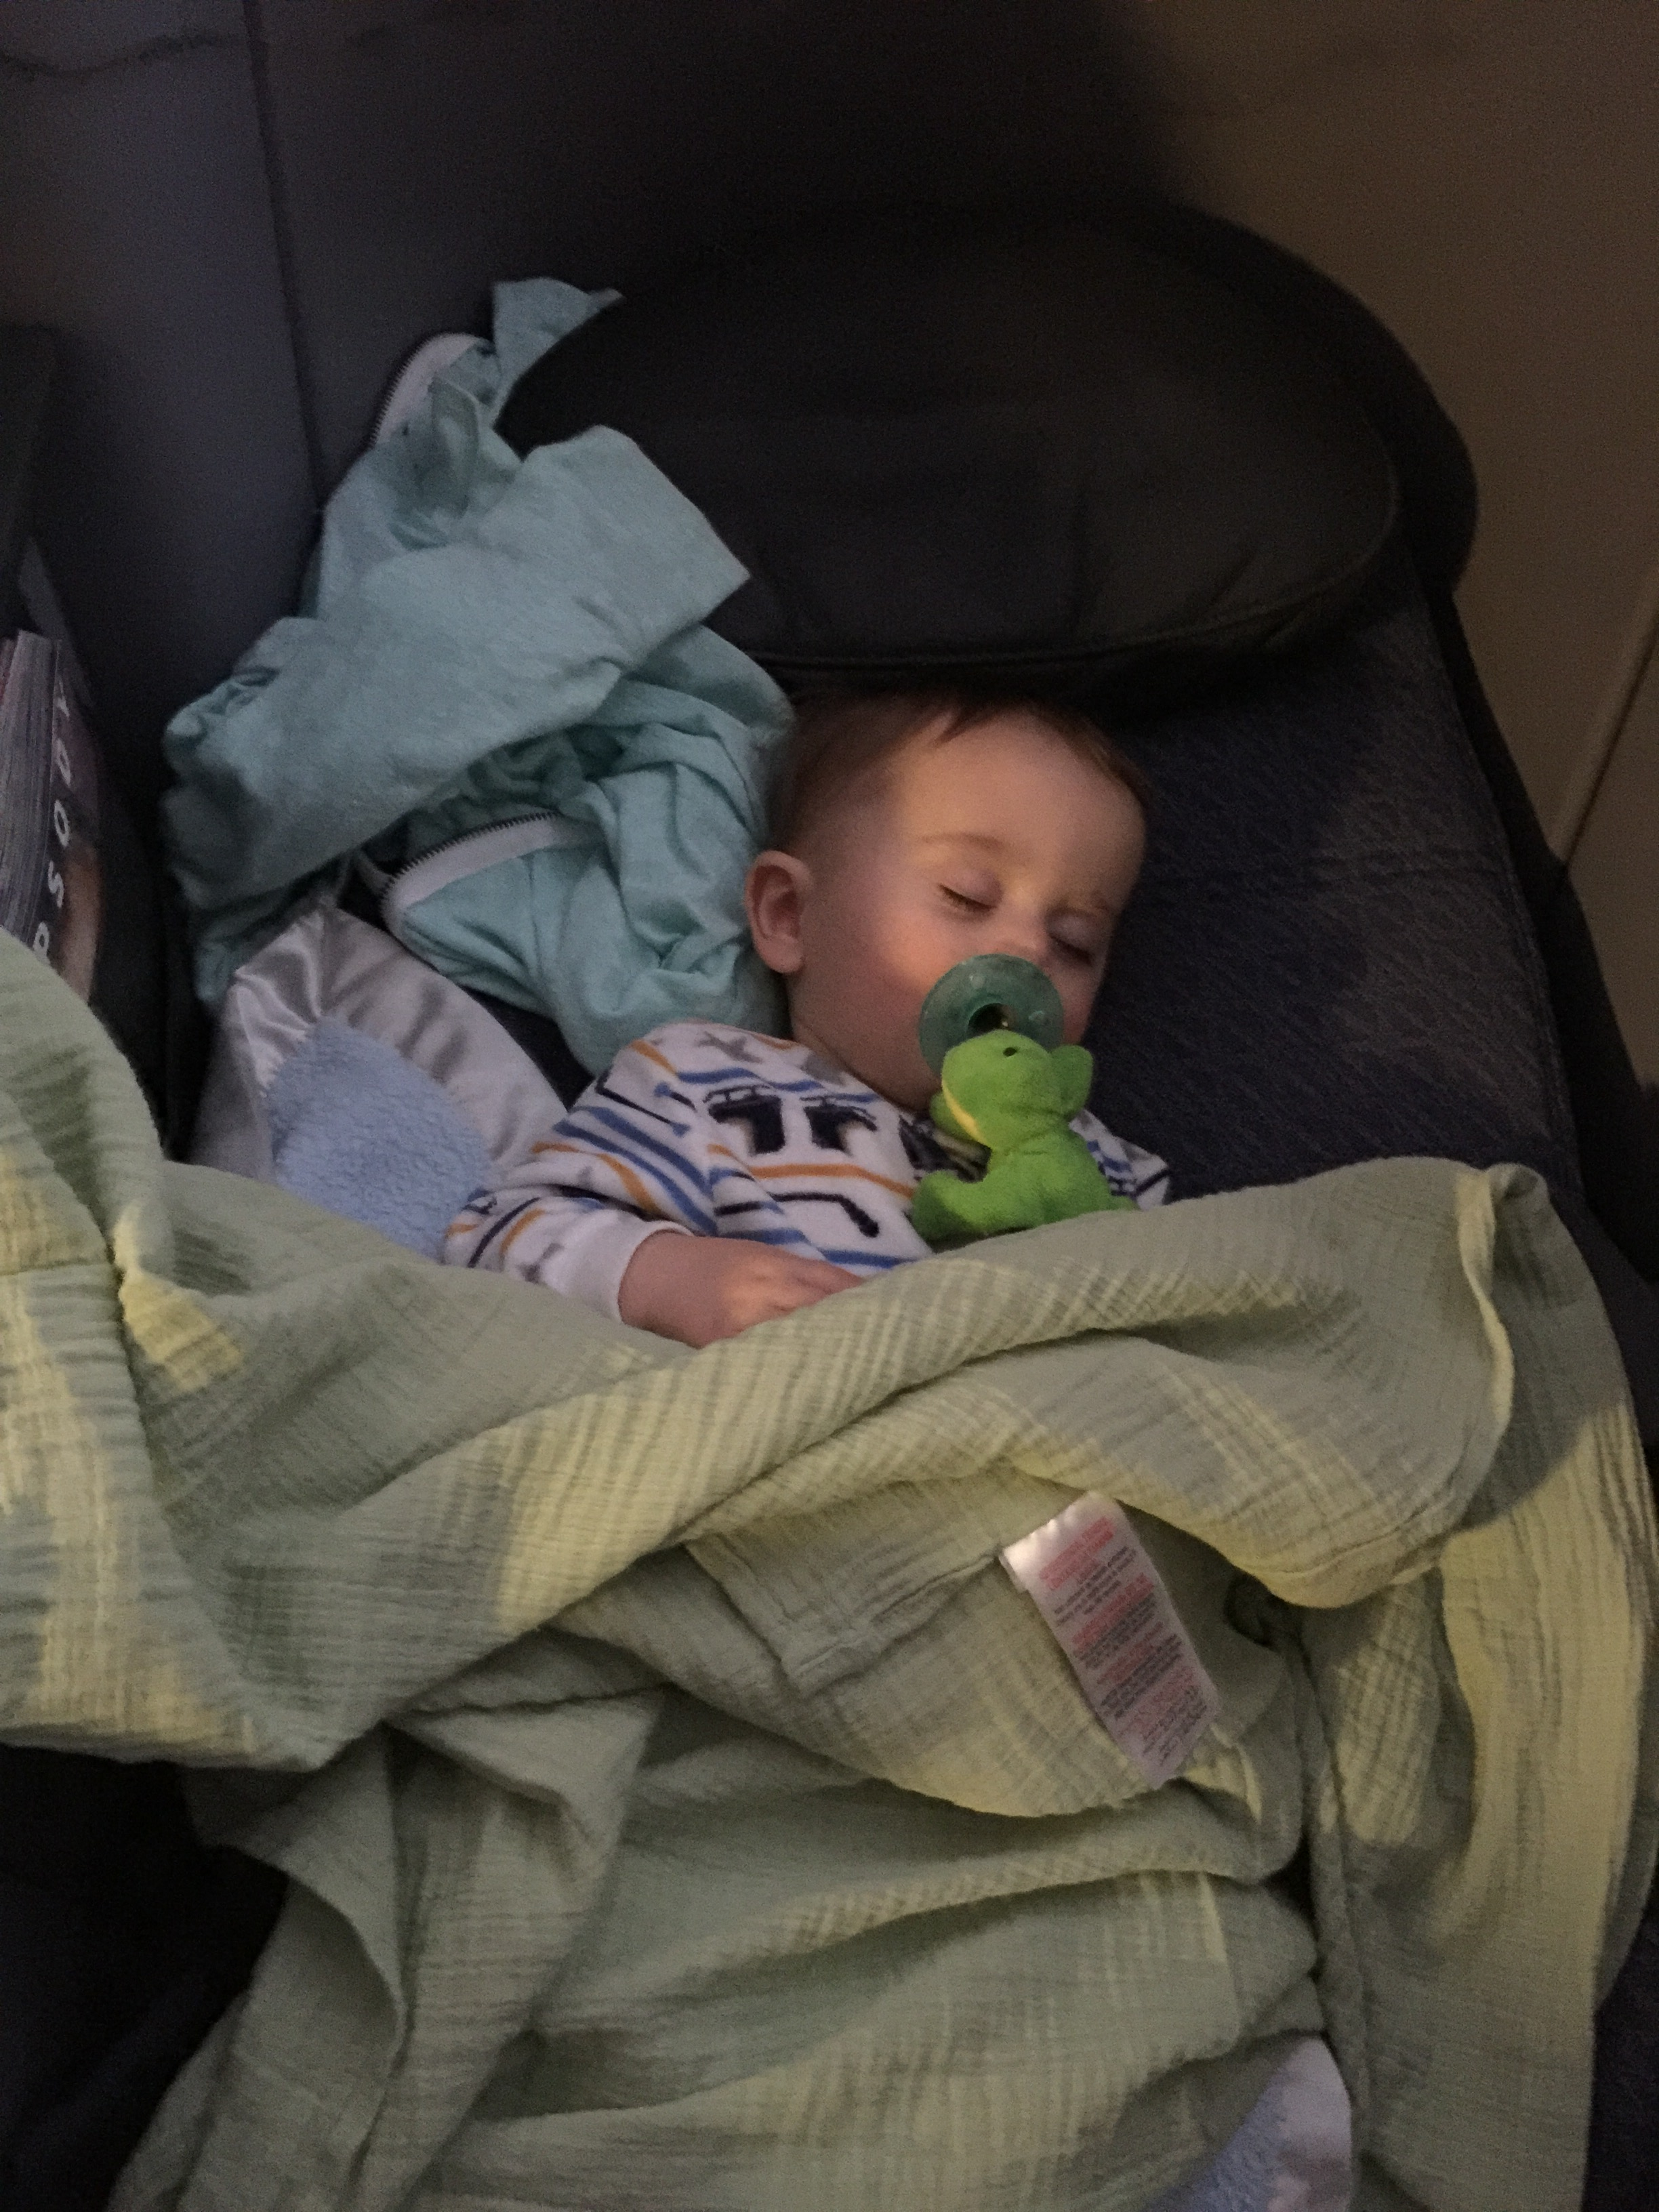 Baby bed airplane - 2261